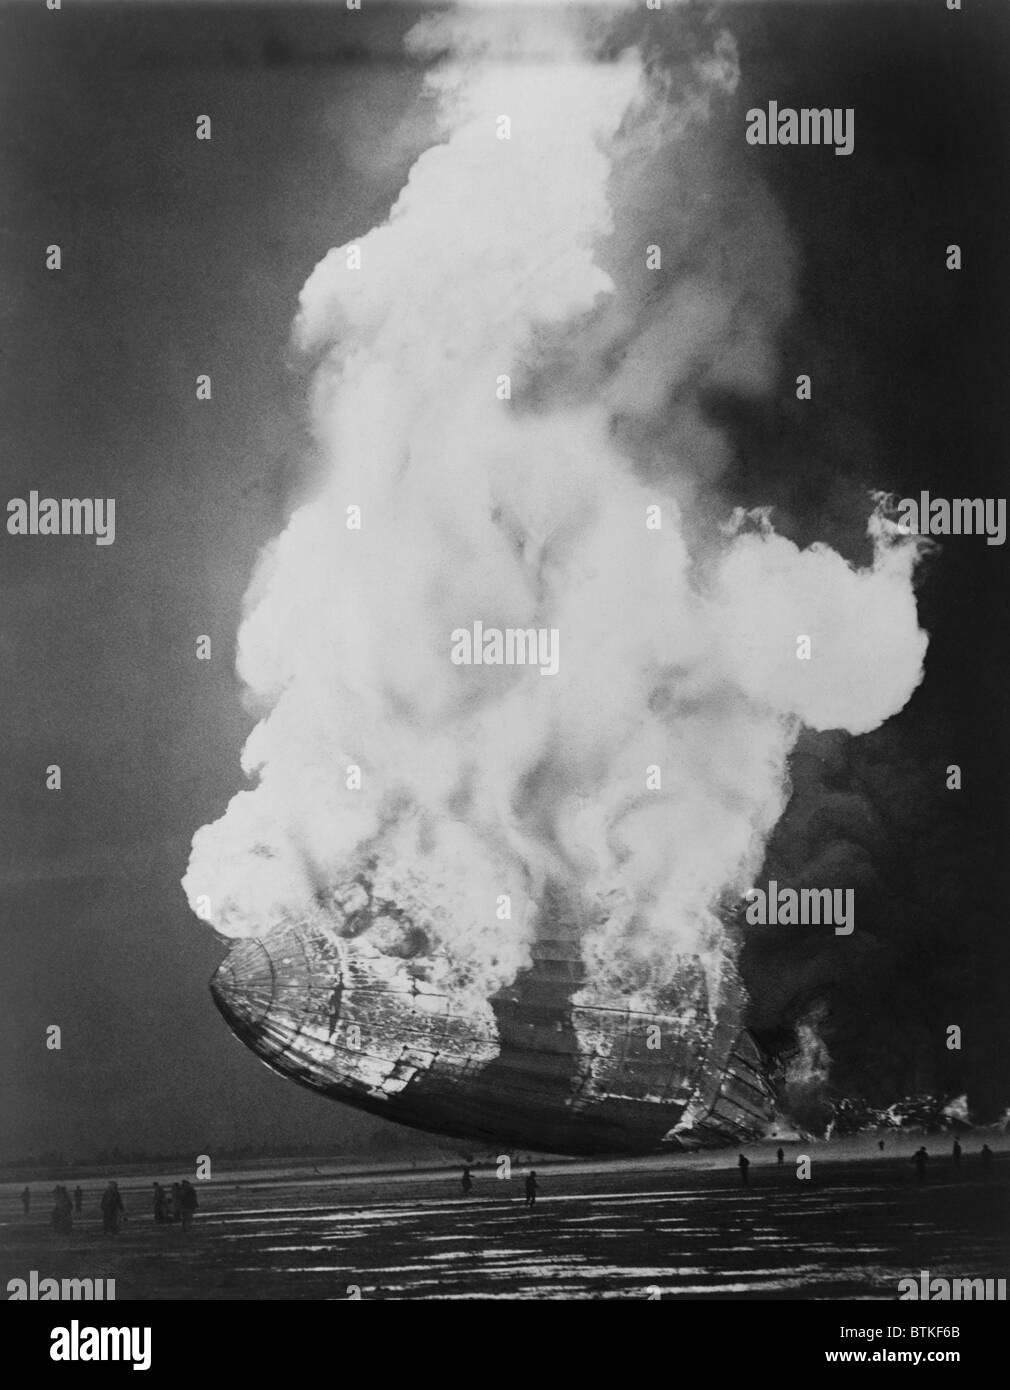 The Hindenburg hits the ground in flames in Lakehurst, N.J. on May 6, 1937. - Stock Image